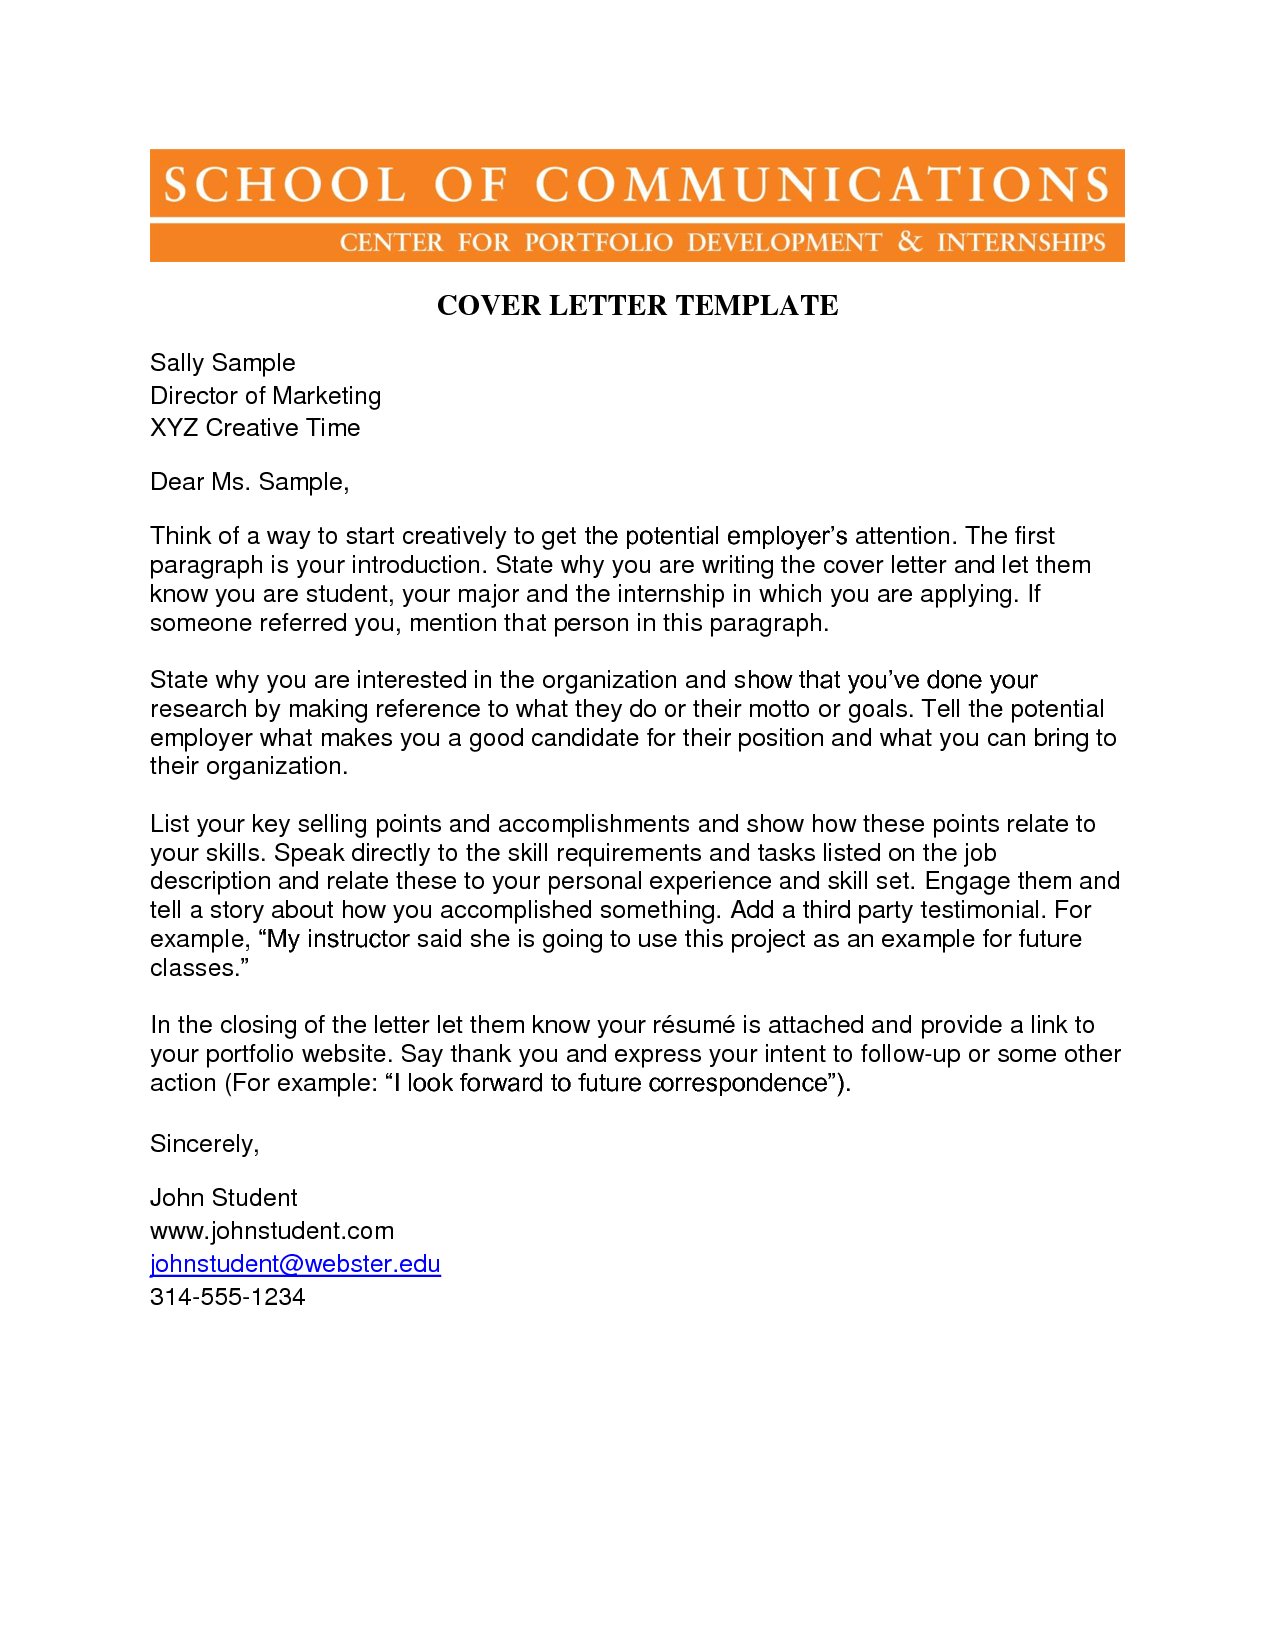 company rebrand letter template examples